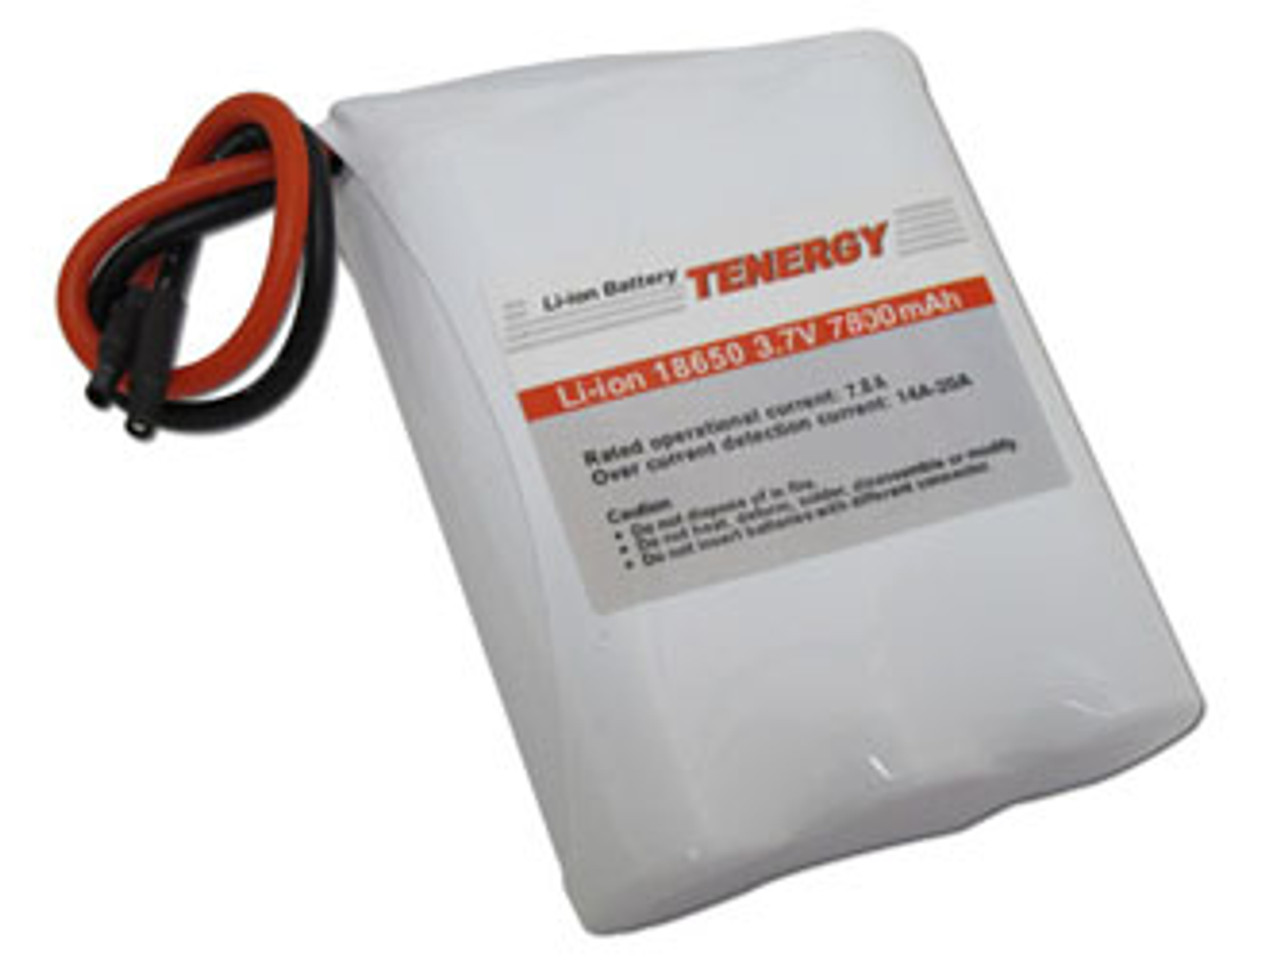 AT: Tenergy Li-ion 18650 3.7V 7800mAh Rechargeable Battery Pack w/ PCB (1S3P, 28.08Wh, 5A Rate)